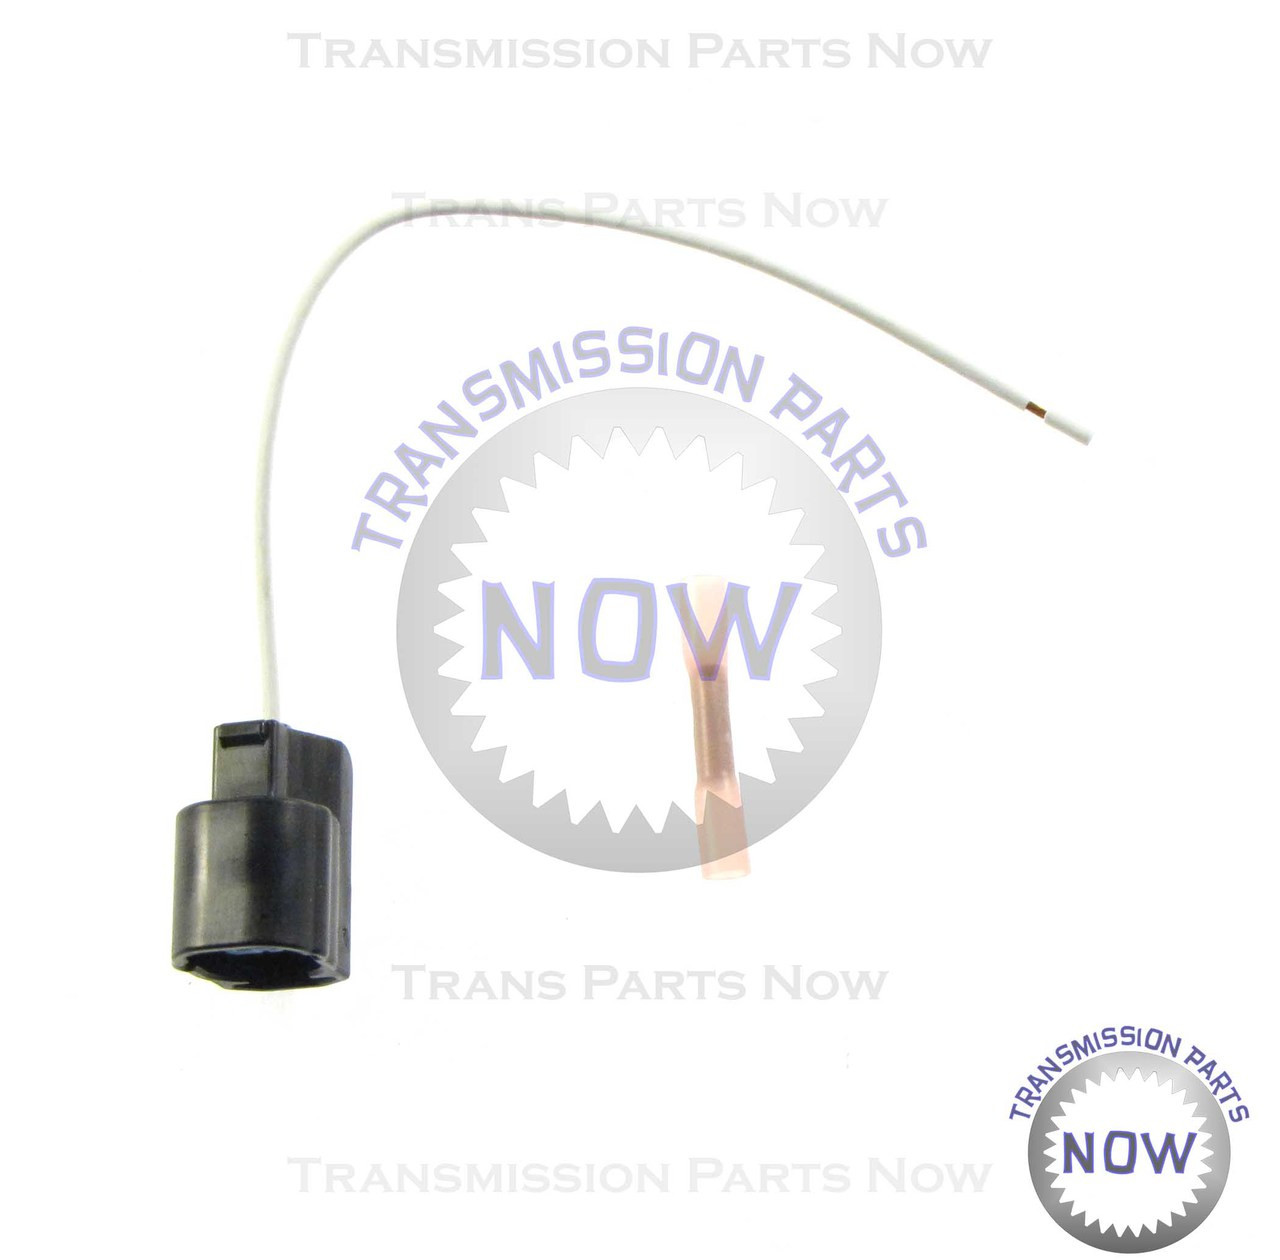 Wire Repair connector, Pressure switch connector, Honda Accord, Civic, Fit, Element, Odyssey, CR-V, Pilot, 350-0147 TransPartsNow, Rostra